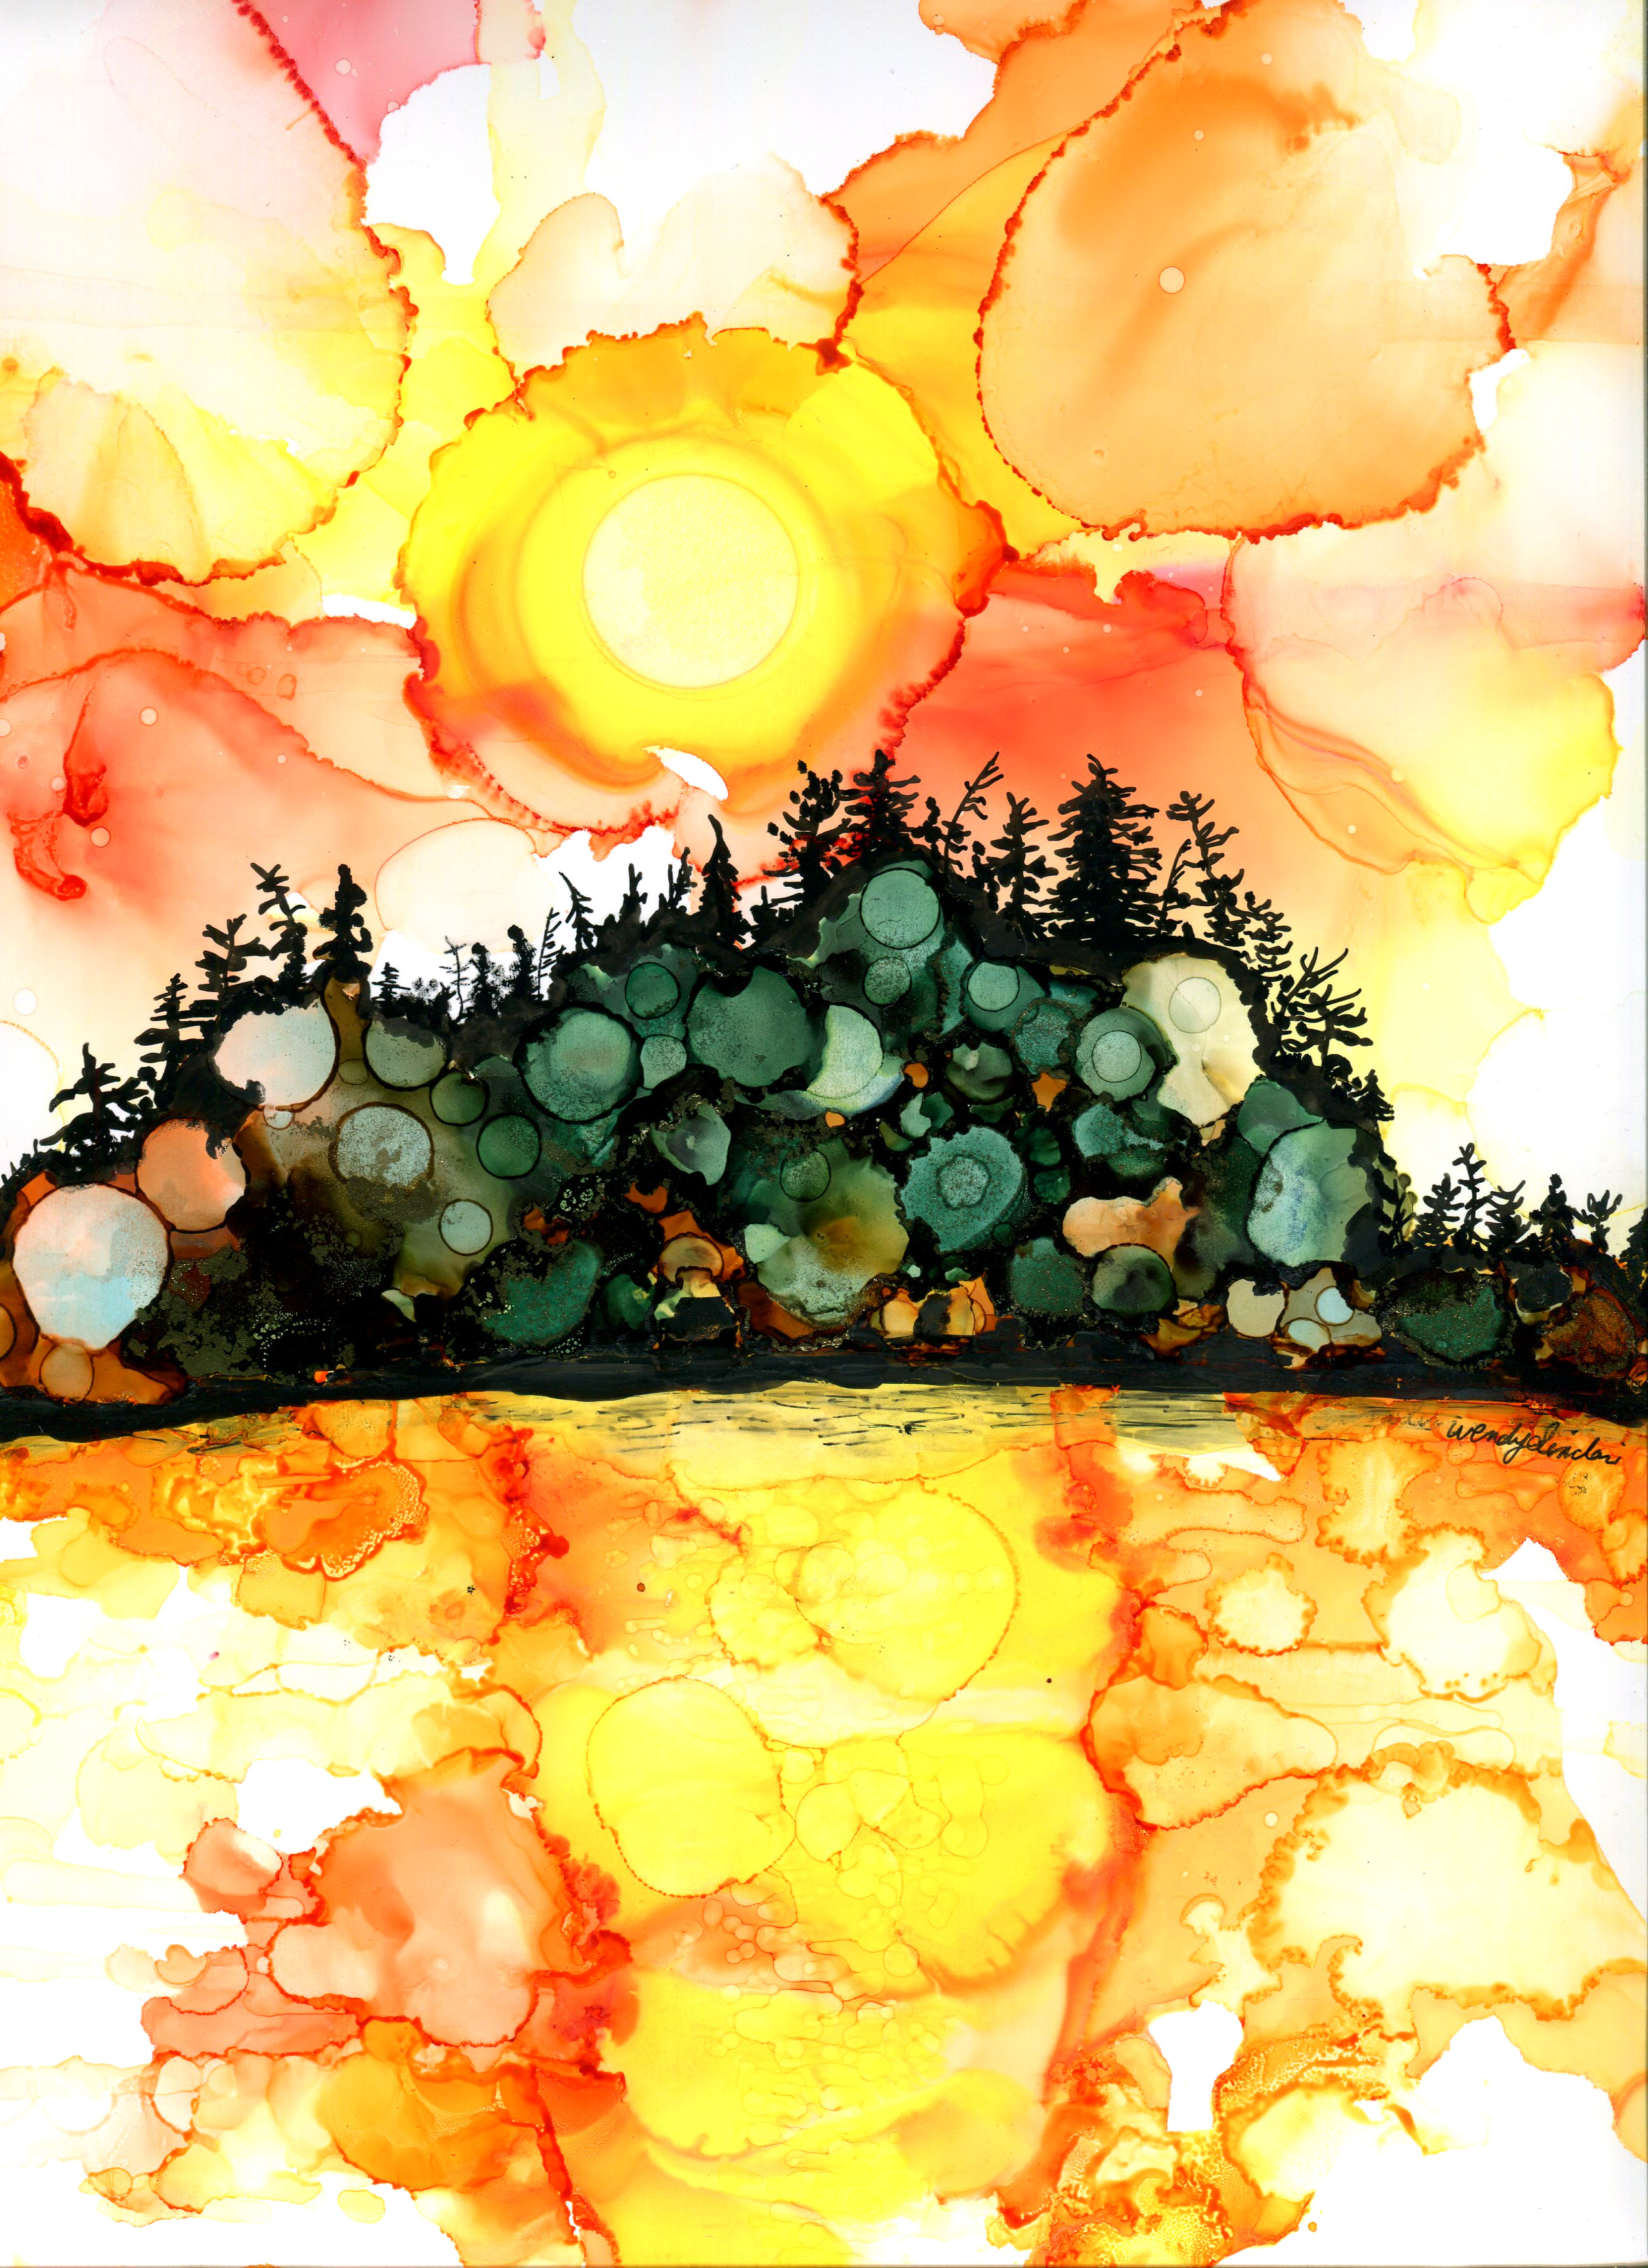 Original art by Toronto artist, Wendy Sinclair. This is a nature scene of an island in Georgian Bay. The medium used is alcohol inks on yupo paper.